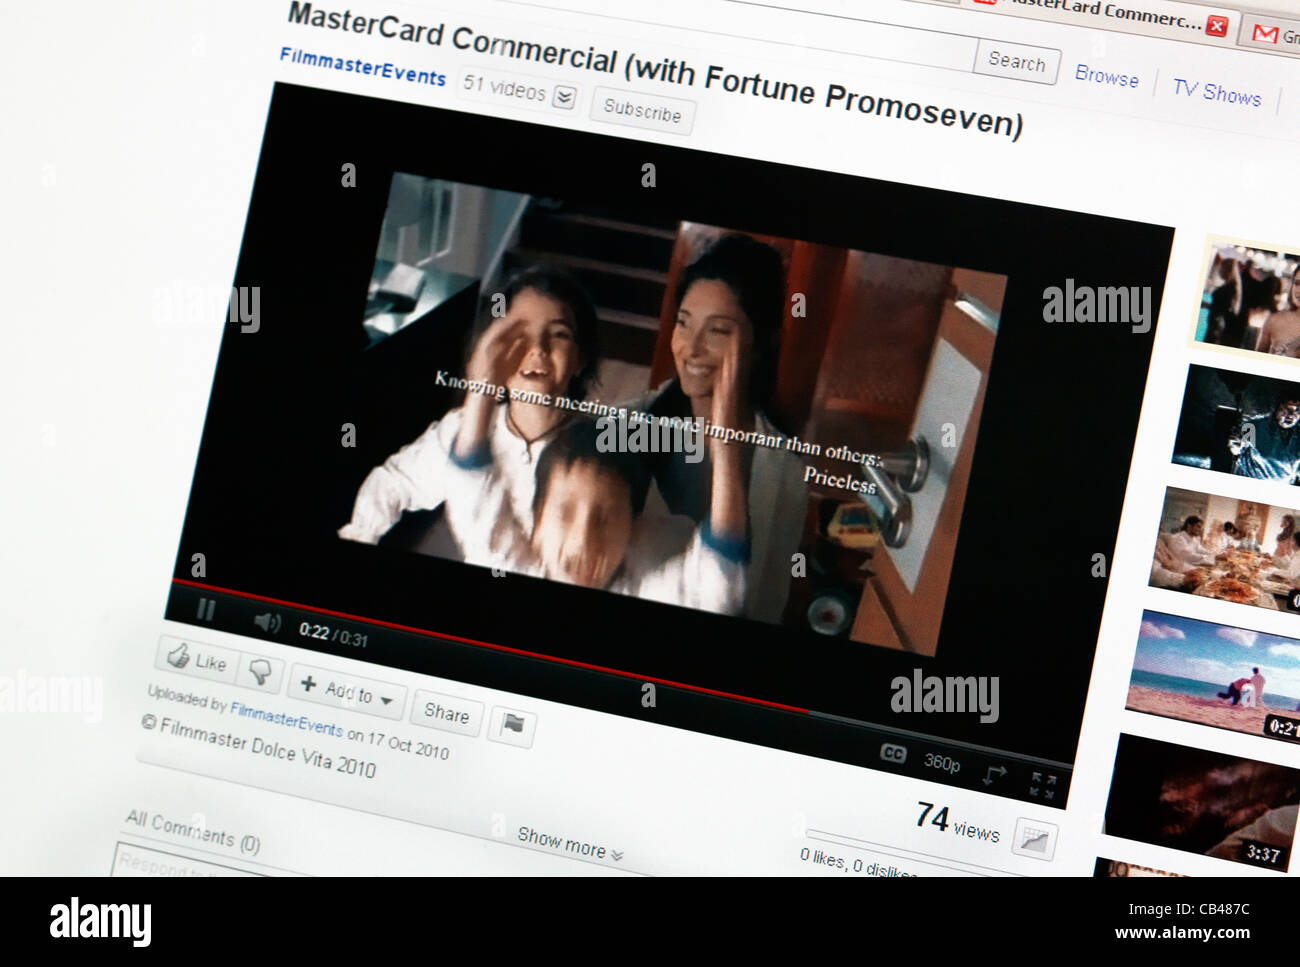 Mastercard Priceless Commercial On Youtube On Computer - Stock Image